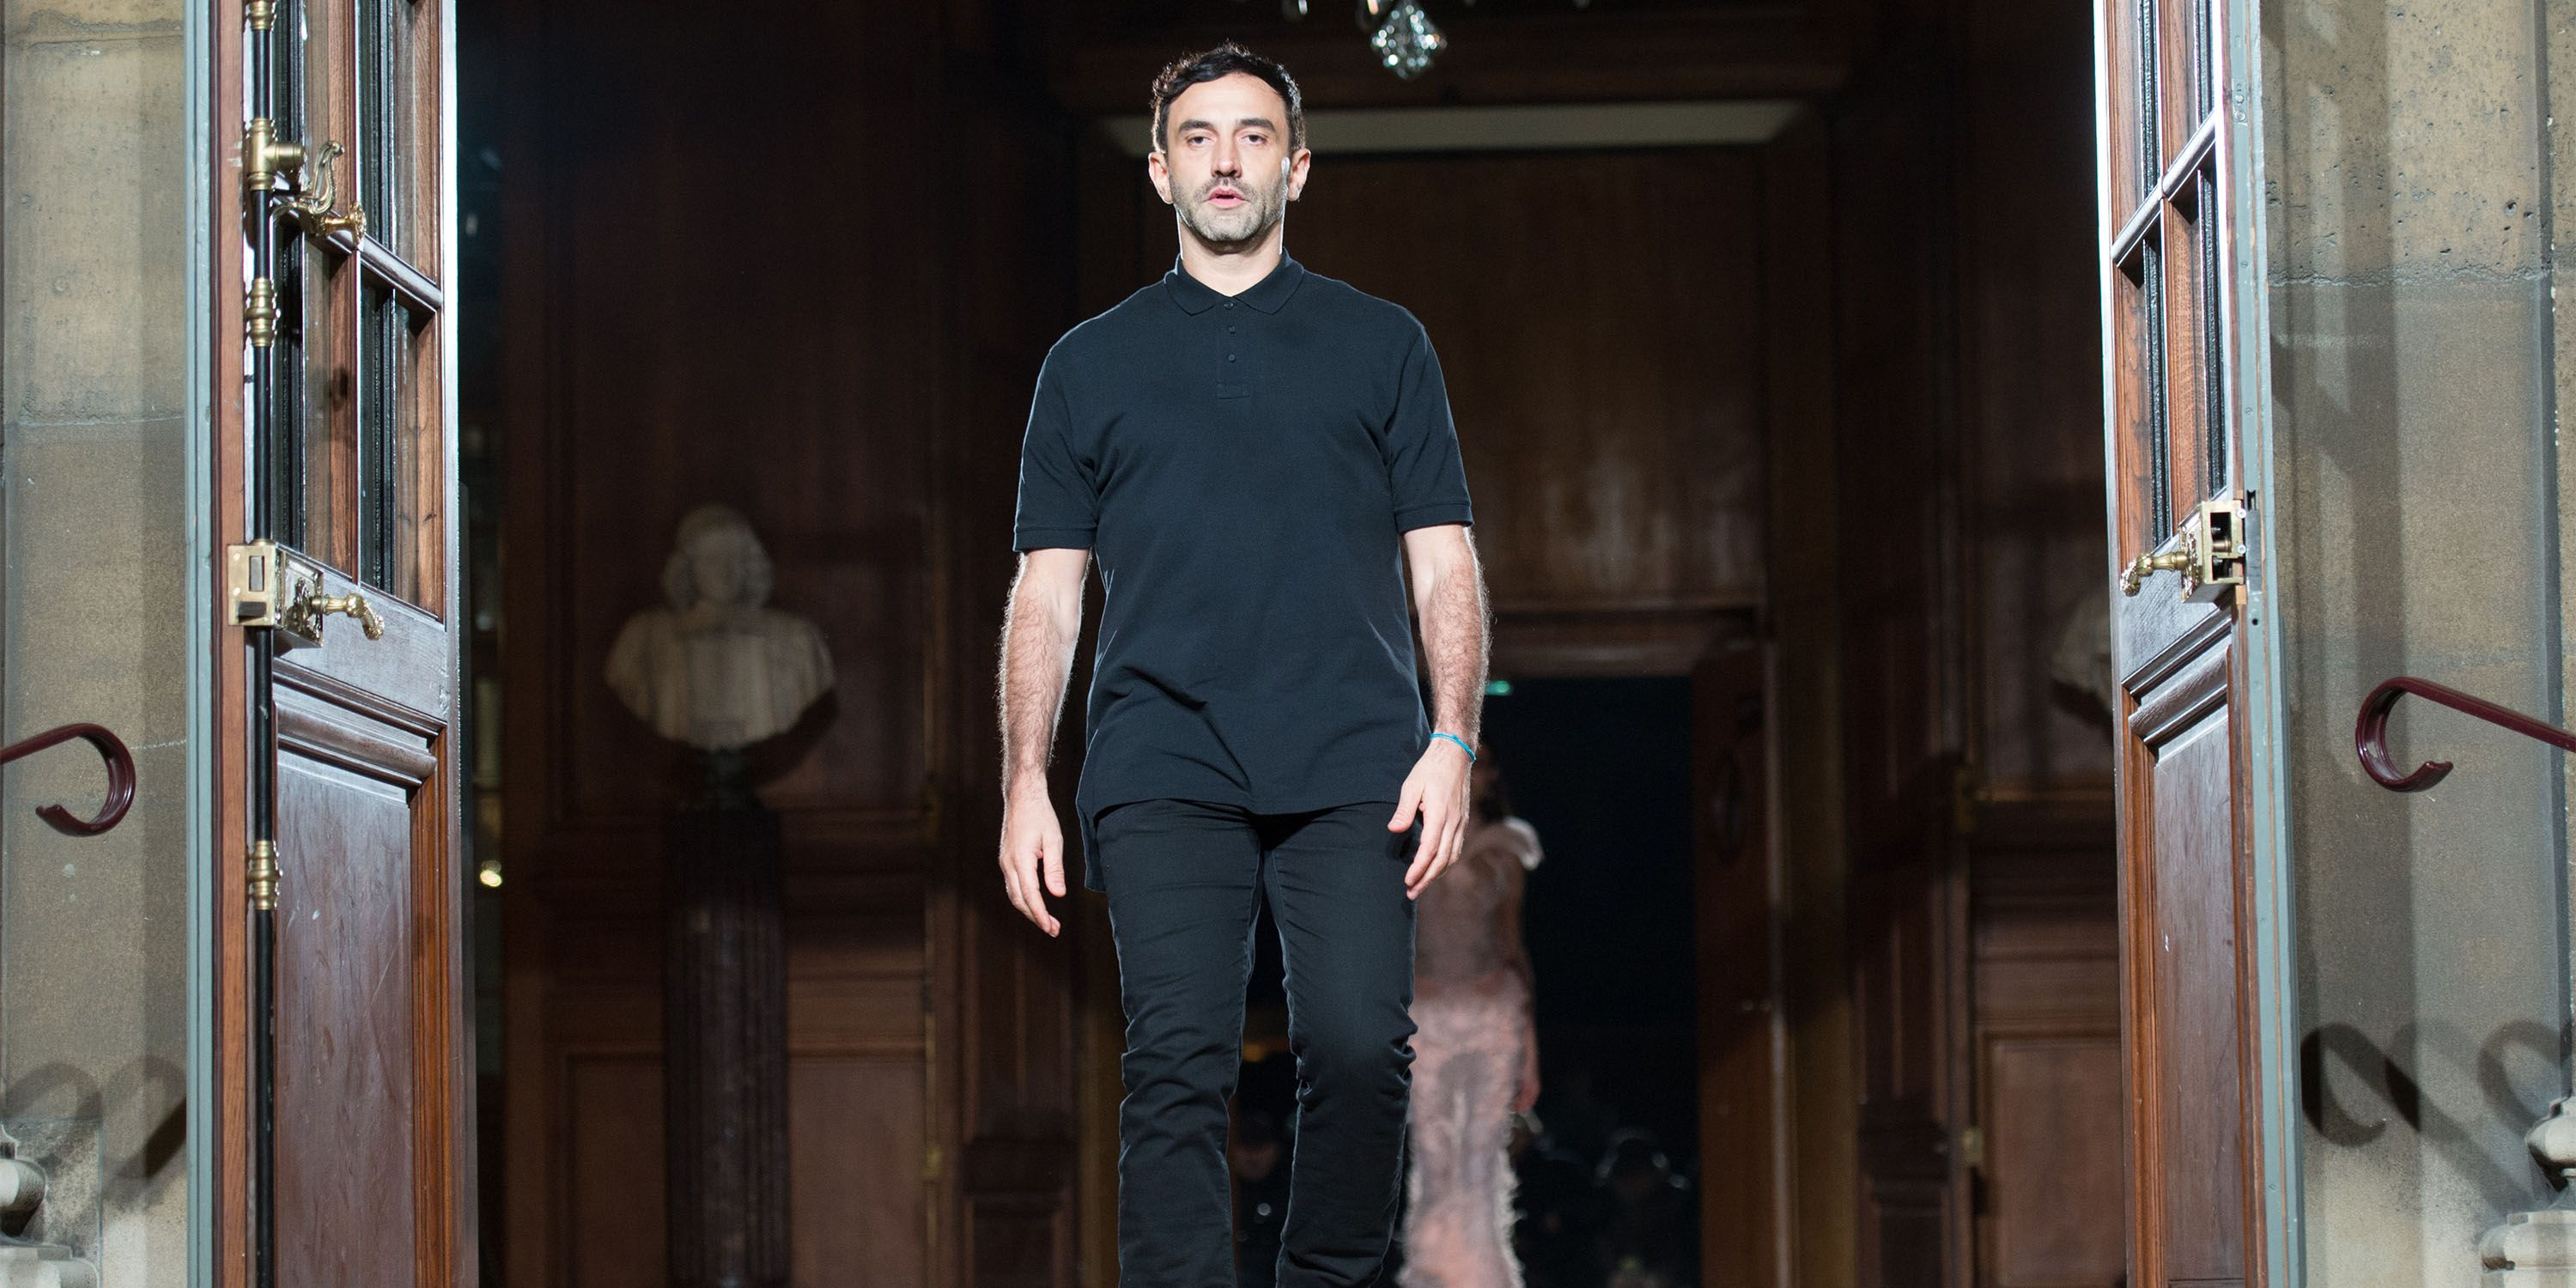 Riccardo Tisci To Join Burberry as Chief Creative Officer Riccardo Tisci To Join Burberry as Chief Creative Officer new photo